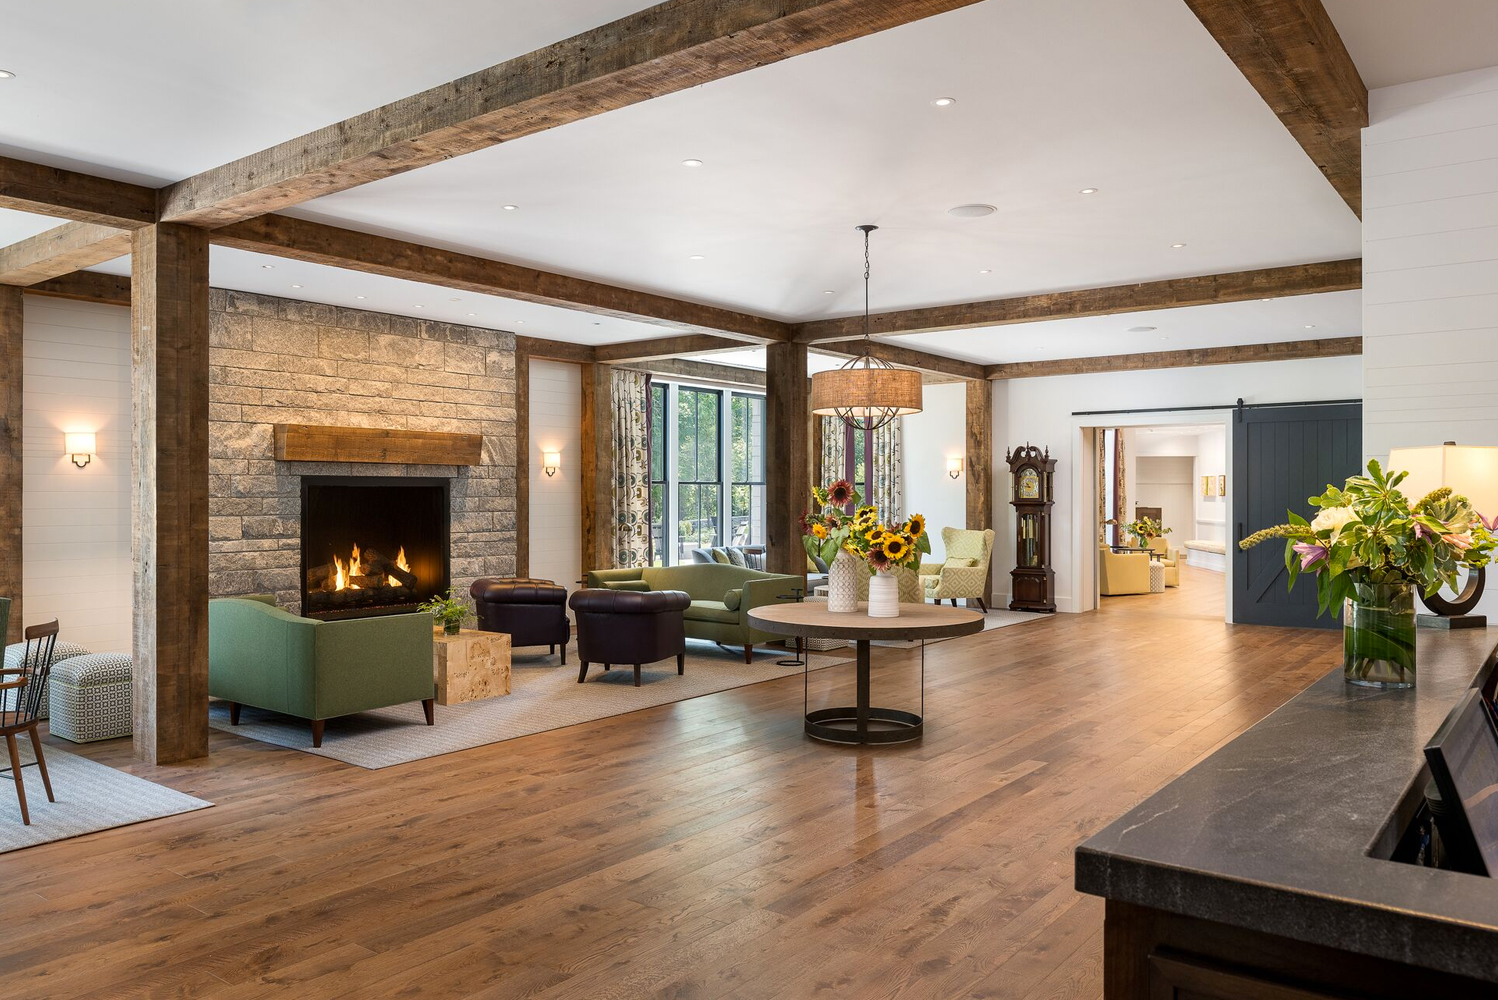 Inspired by the architectural vernacular of New England, the inn is positioned at the town center, and was designed to fit into the community.